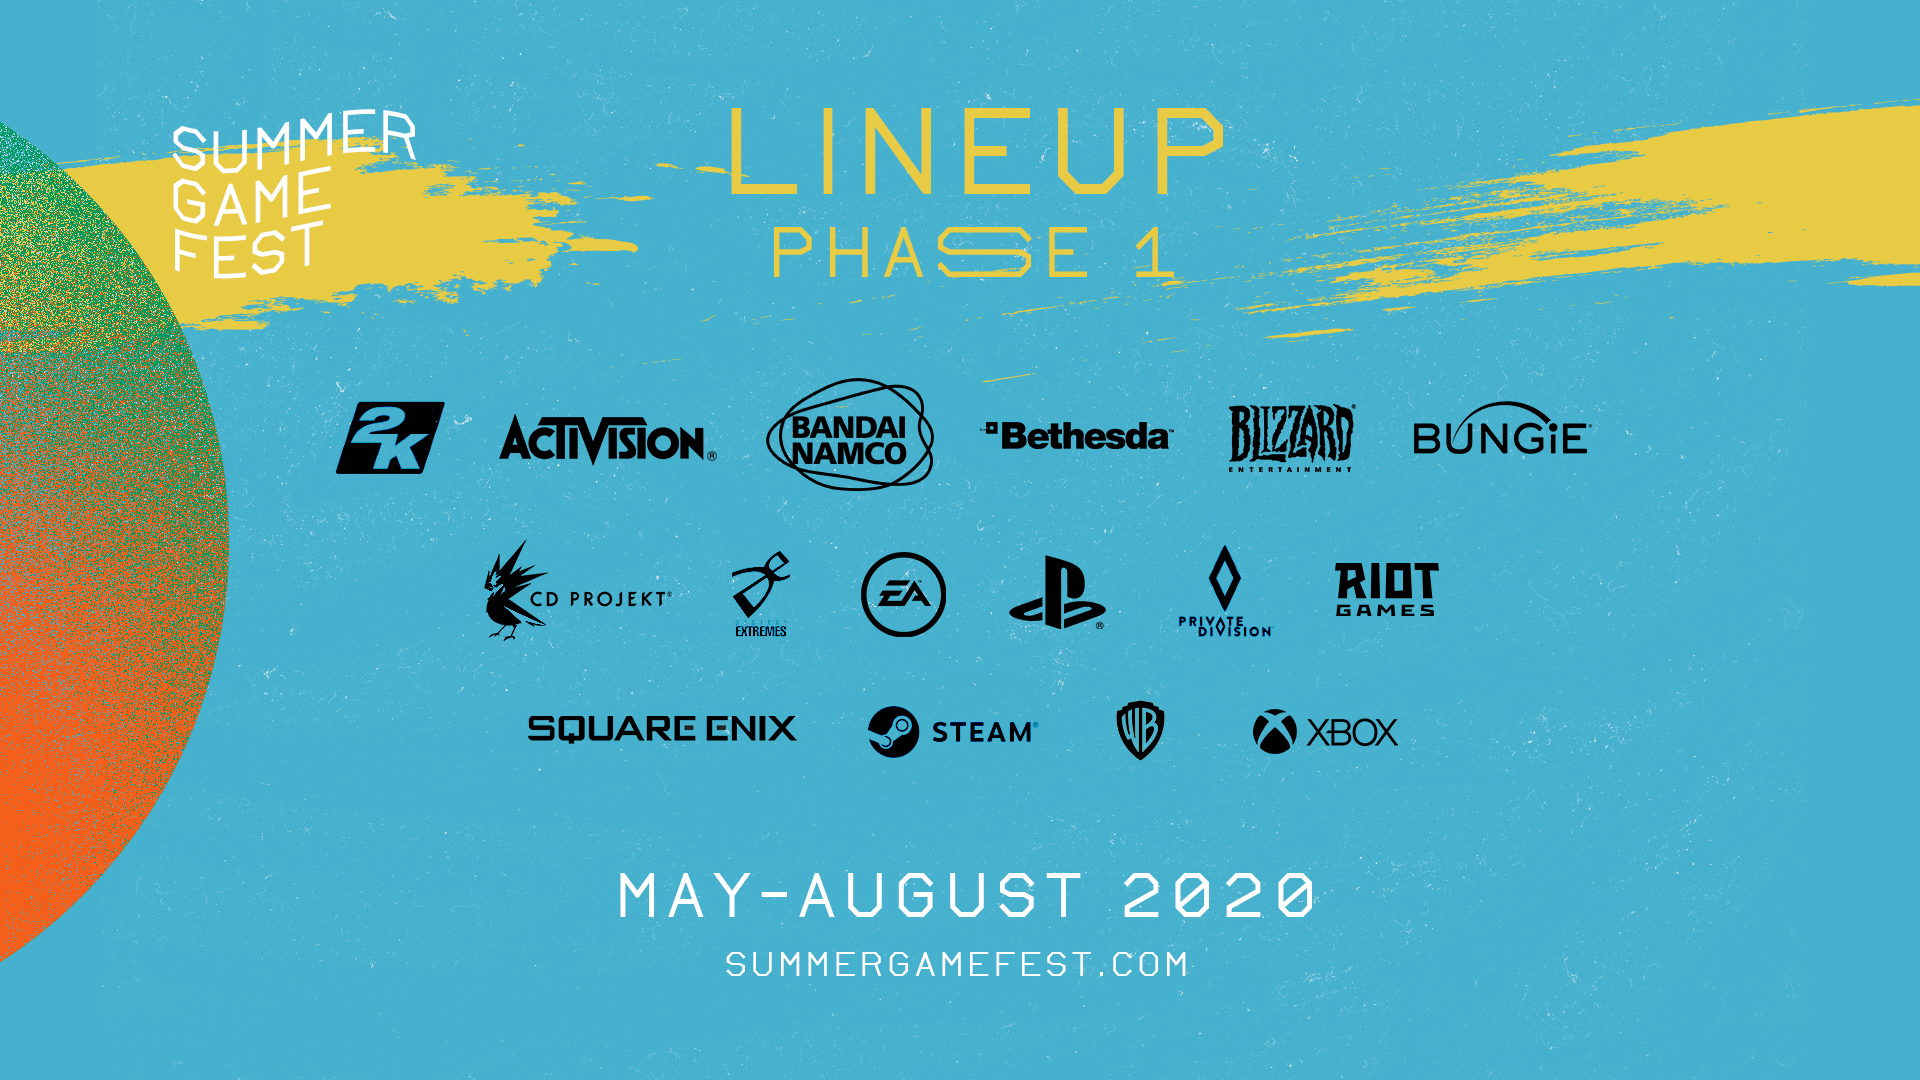 Summer Game Fest Phase 1